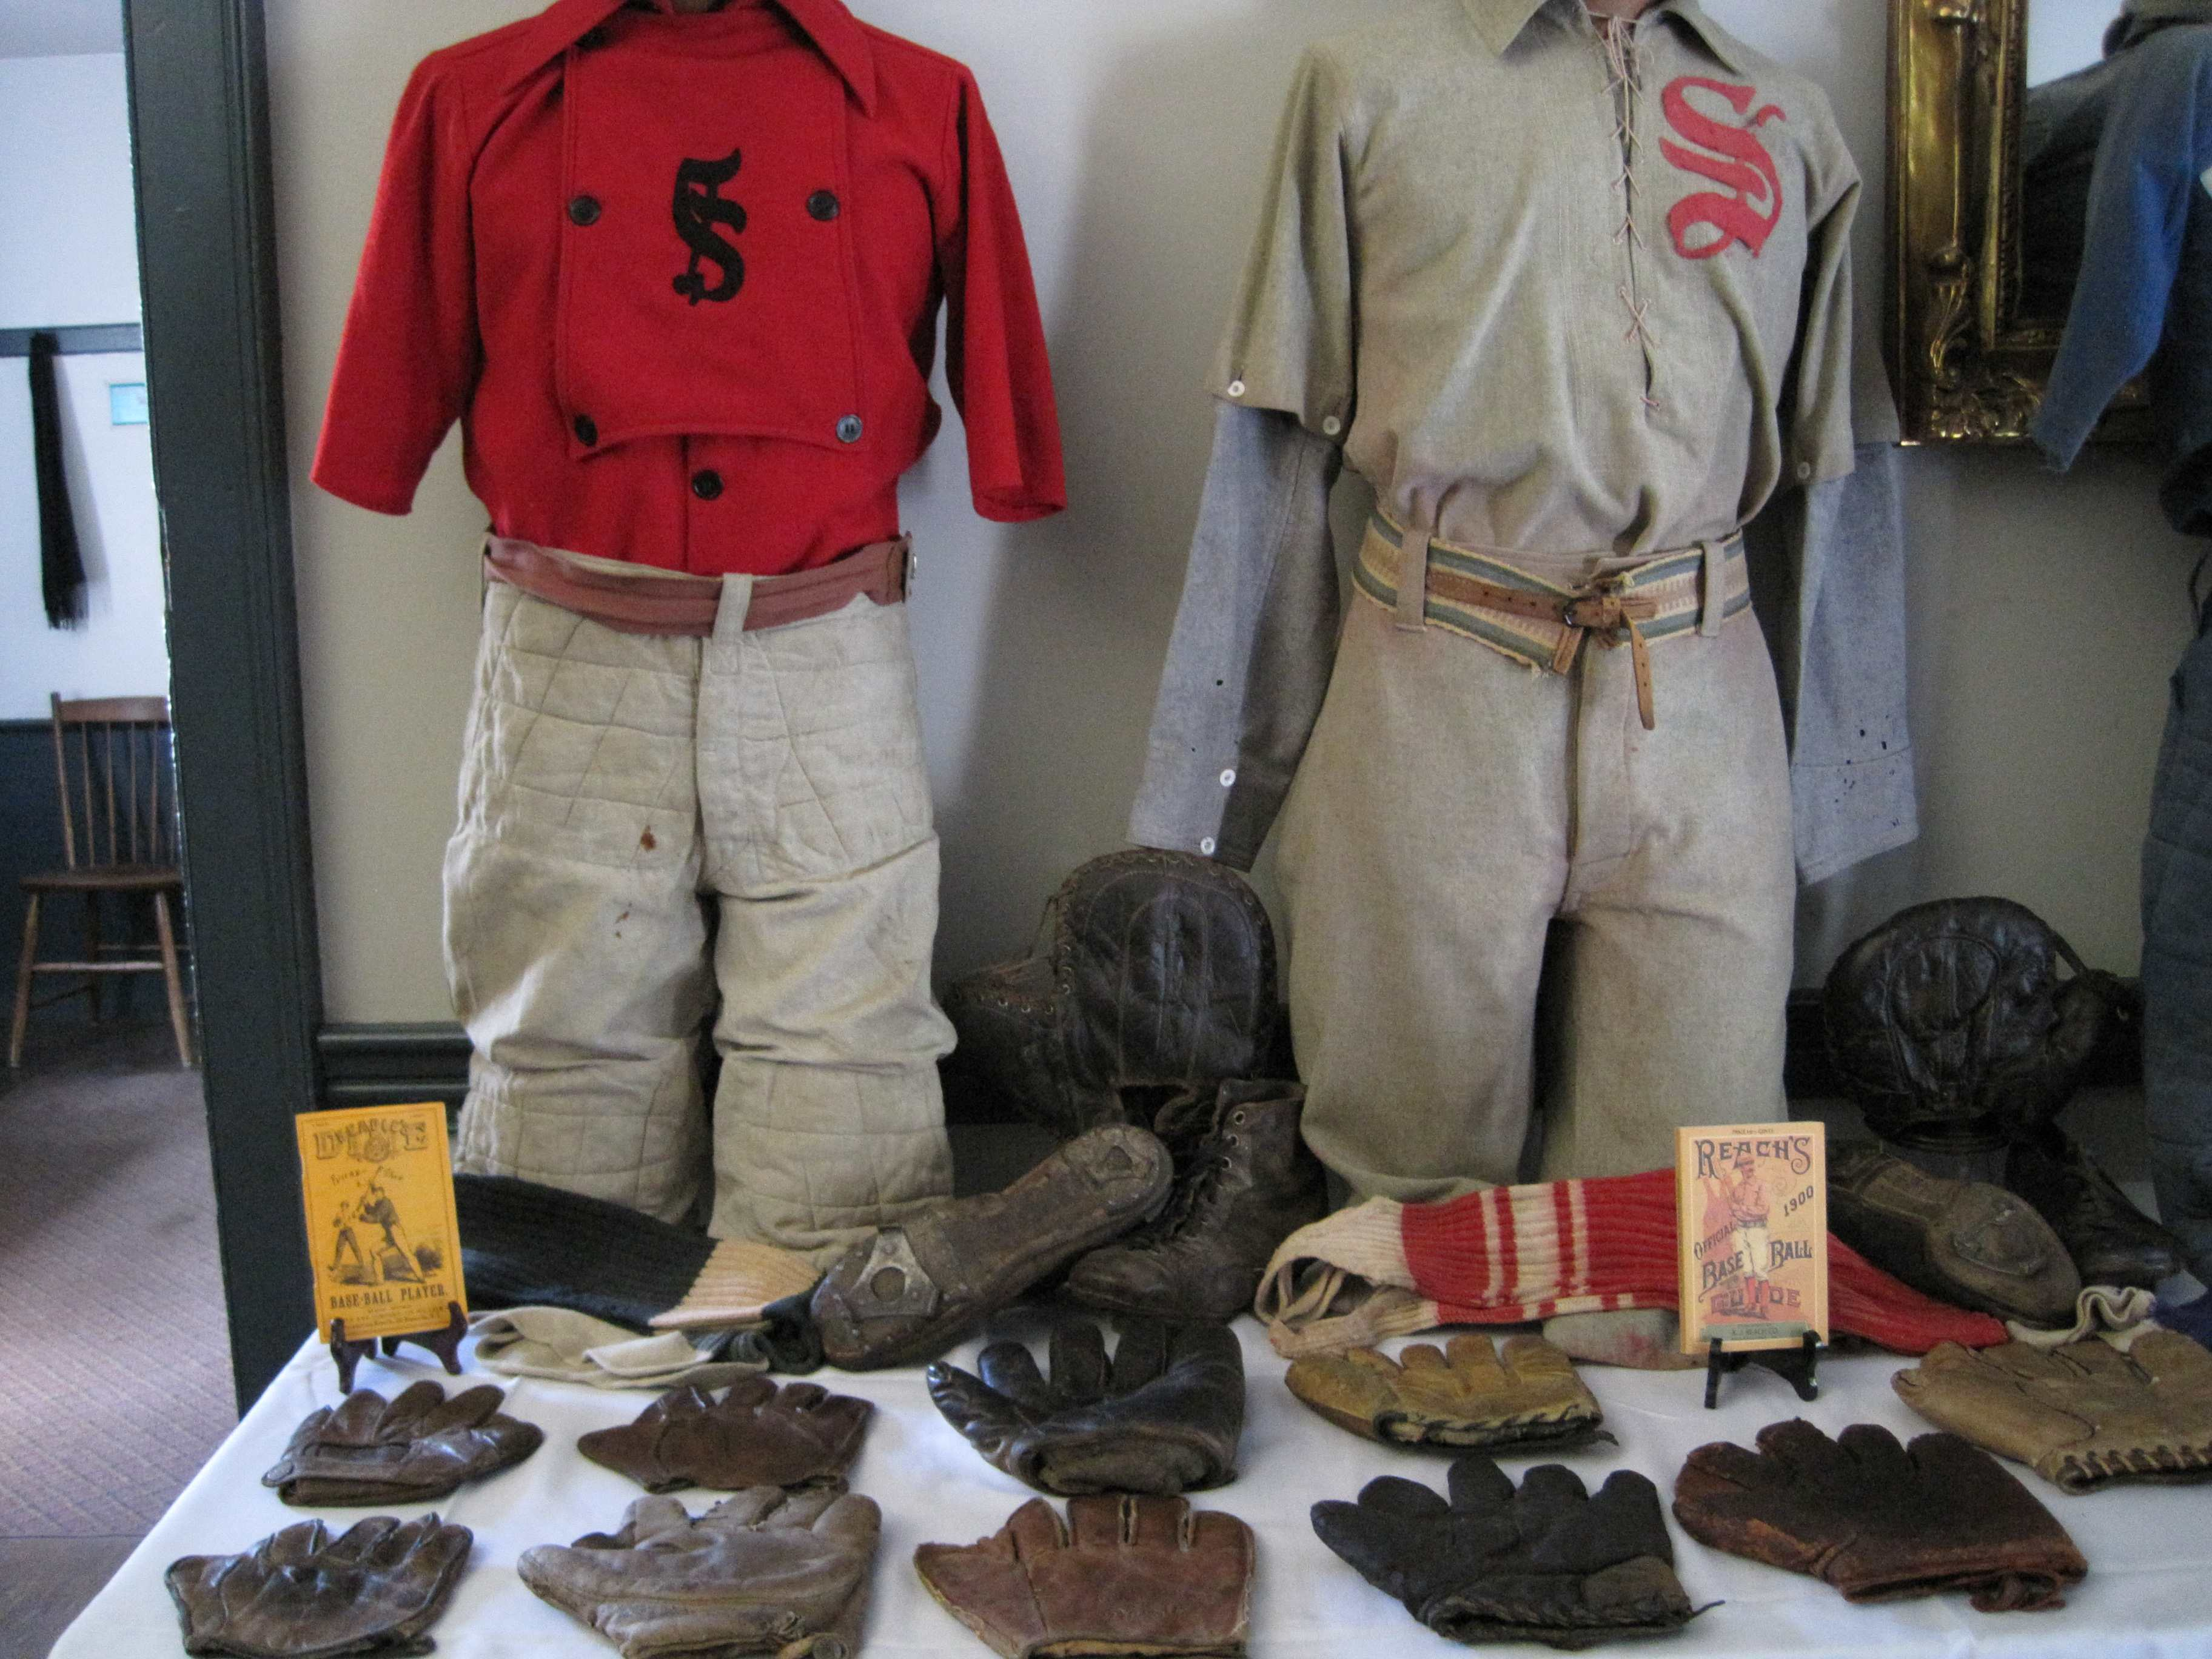 Tracy Martin&#39;s collection of vintage base ball equipment and uniforms spanning 150 years, will be part of Ohio Village&#39;s Glorious Fourth Celebration.